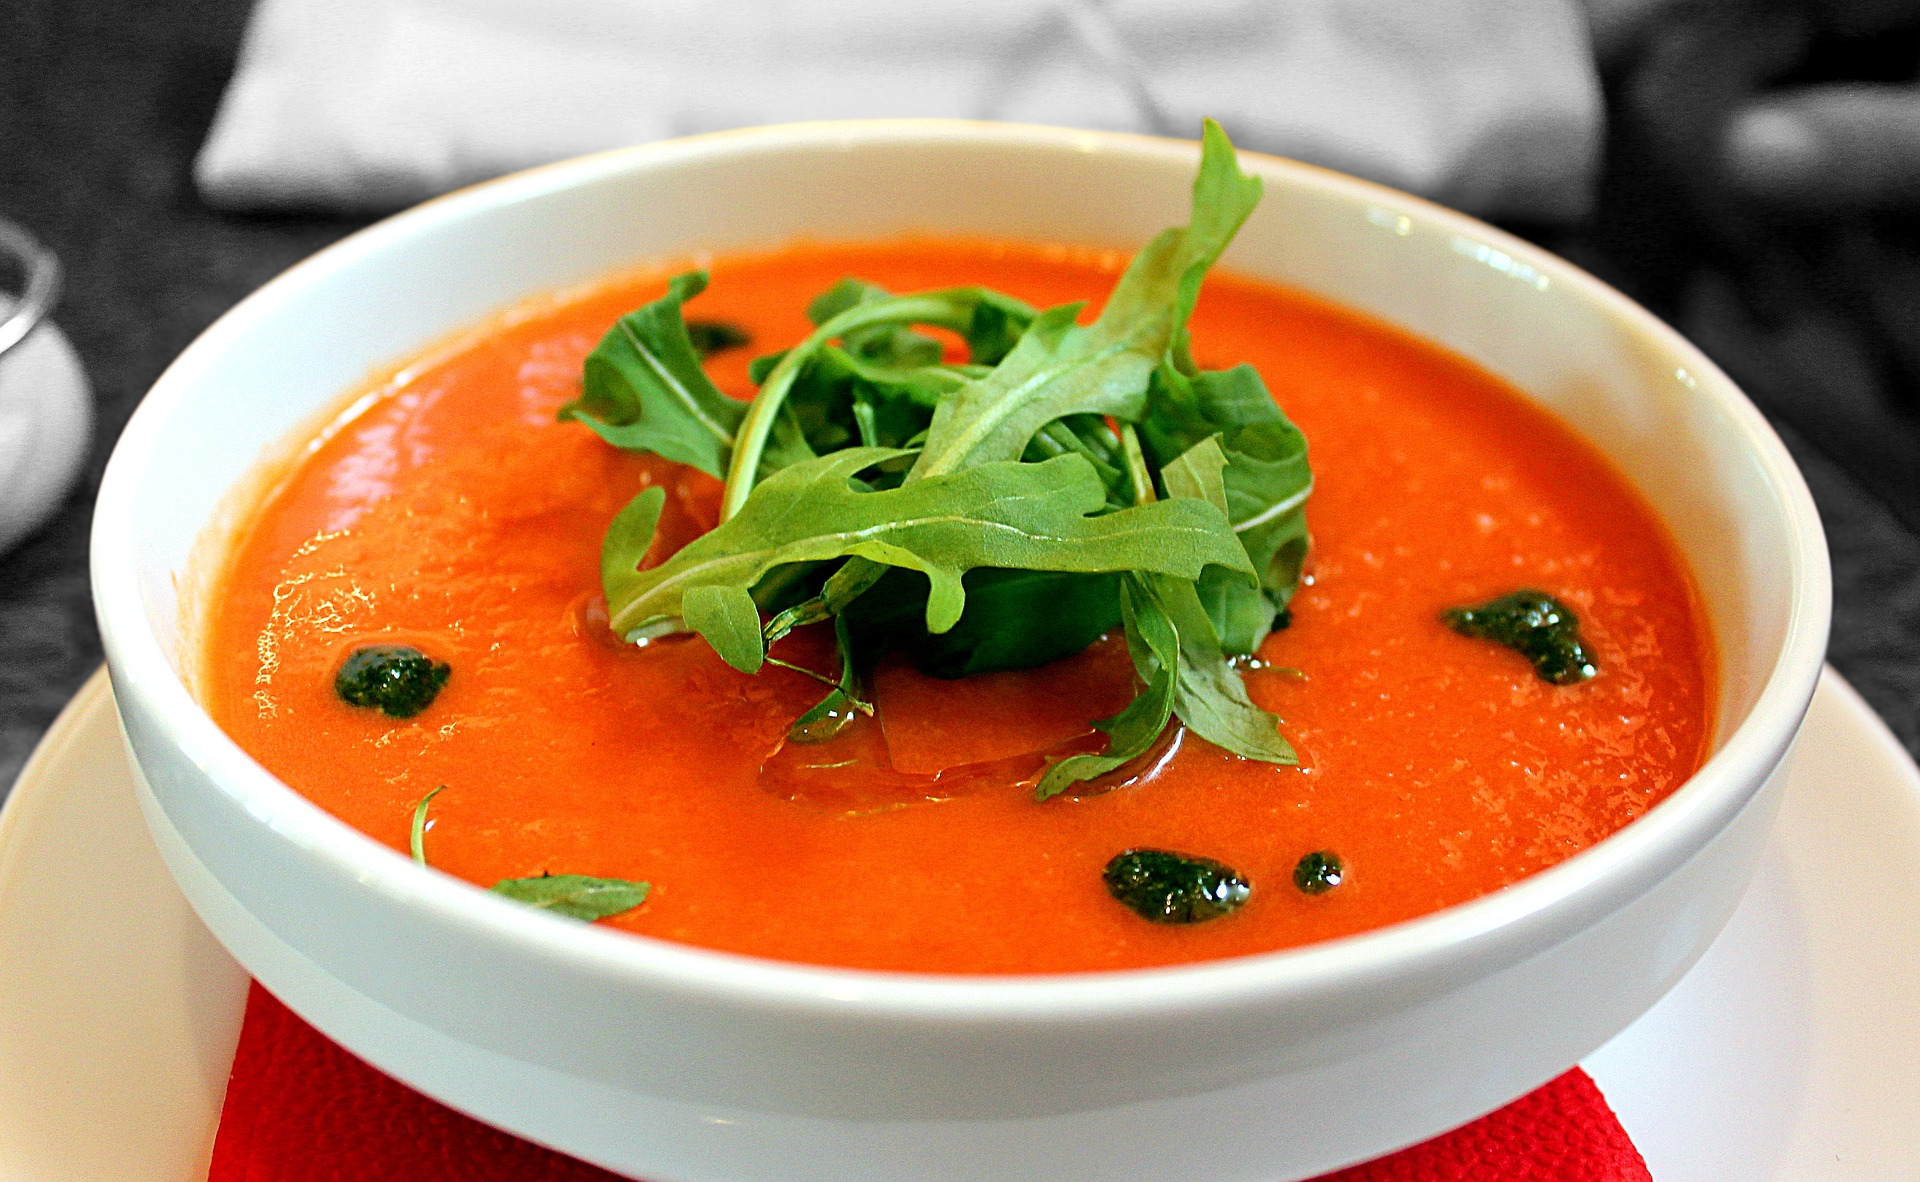 Tomato soup with rocket and olives